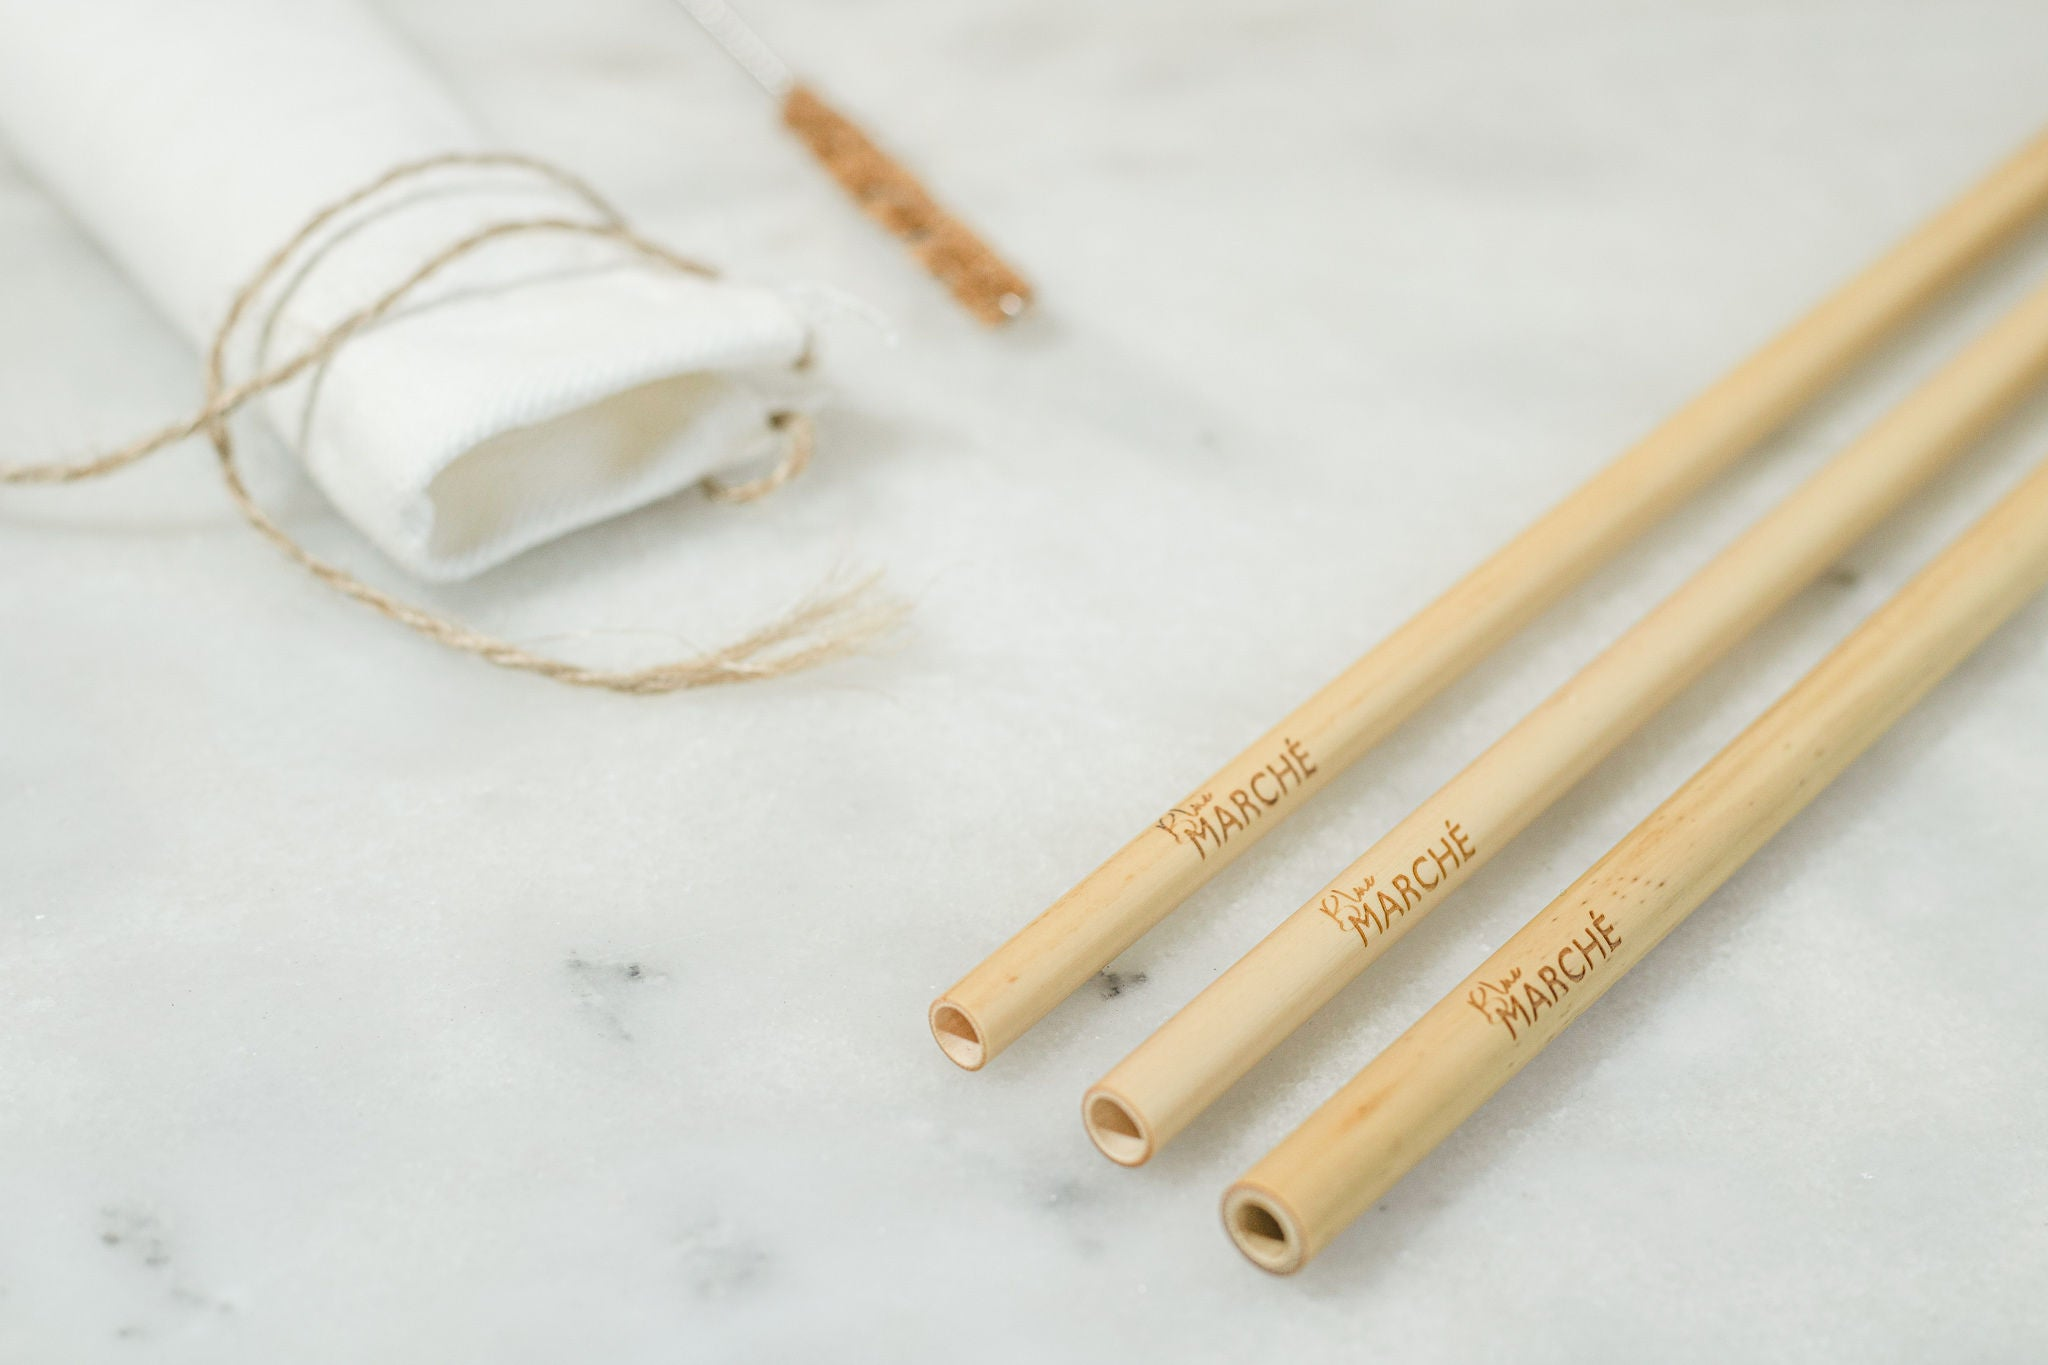 blue marche regular bamboo straw set in 6mm with 20 cm length